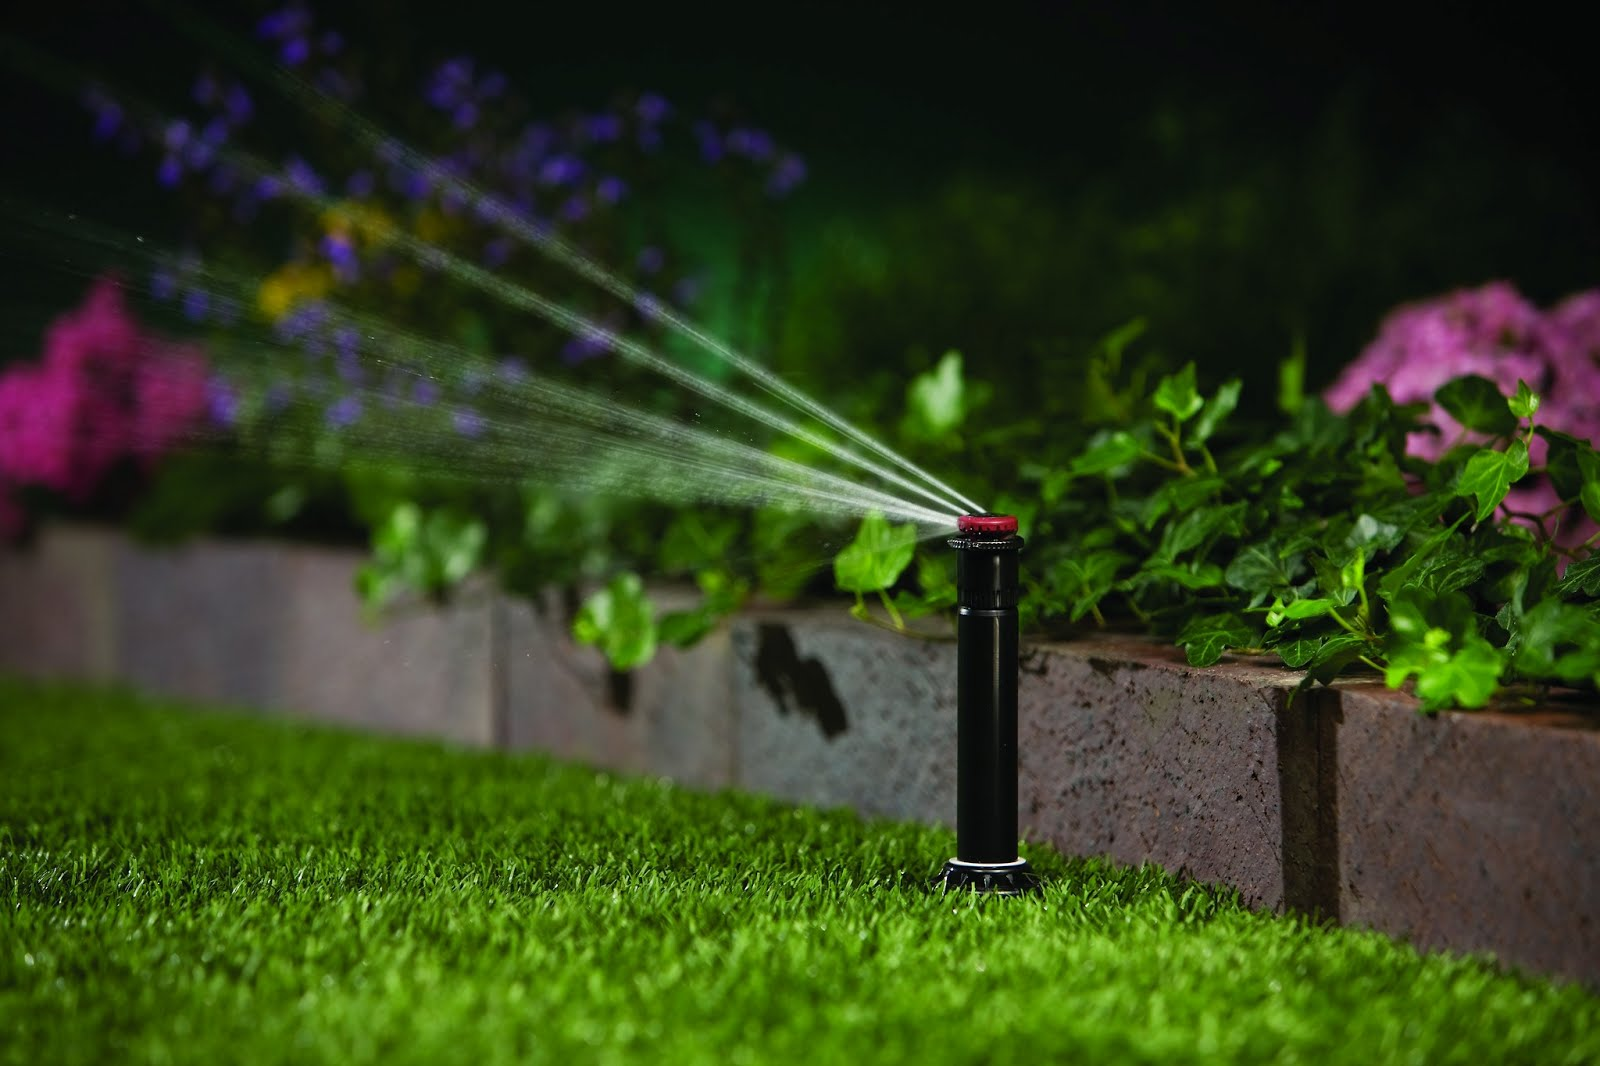 Sprinkler Services-Irving TX Professional Landscapers & Outdoor Living Designs-We offer Landscape Design, Outdoor Patios & Pergolas, Outdoor Living Spaces, Stonescapes, Residential & Commercial Landscaping, Irrigation Installation & Repairs, Drainage Systems, Landscape Lighting, Outdoor Living Spaces, Tree Service, Lawn Service, and more.